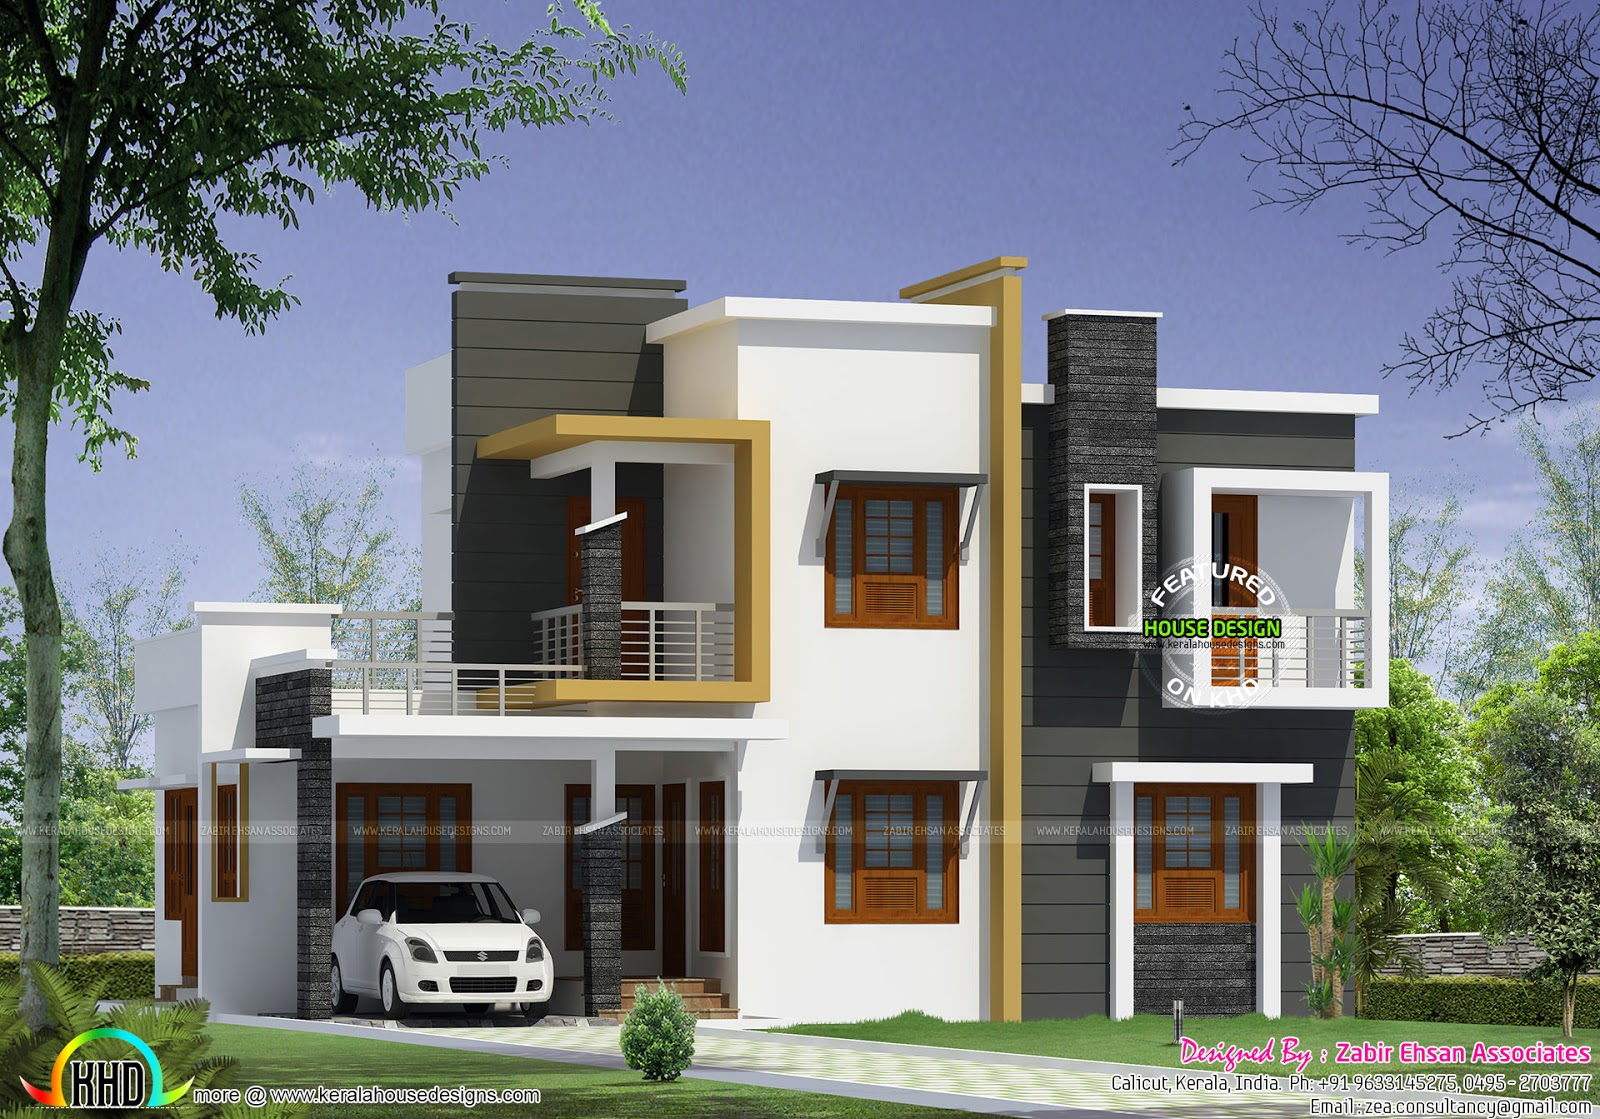 box type modern house plan kerala home design and floor plans. Black Bedroom Furniture Sets. Home Design Ideas